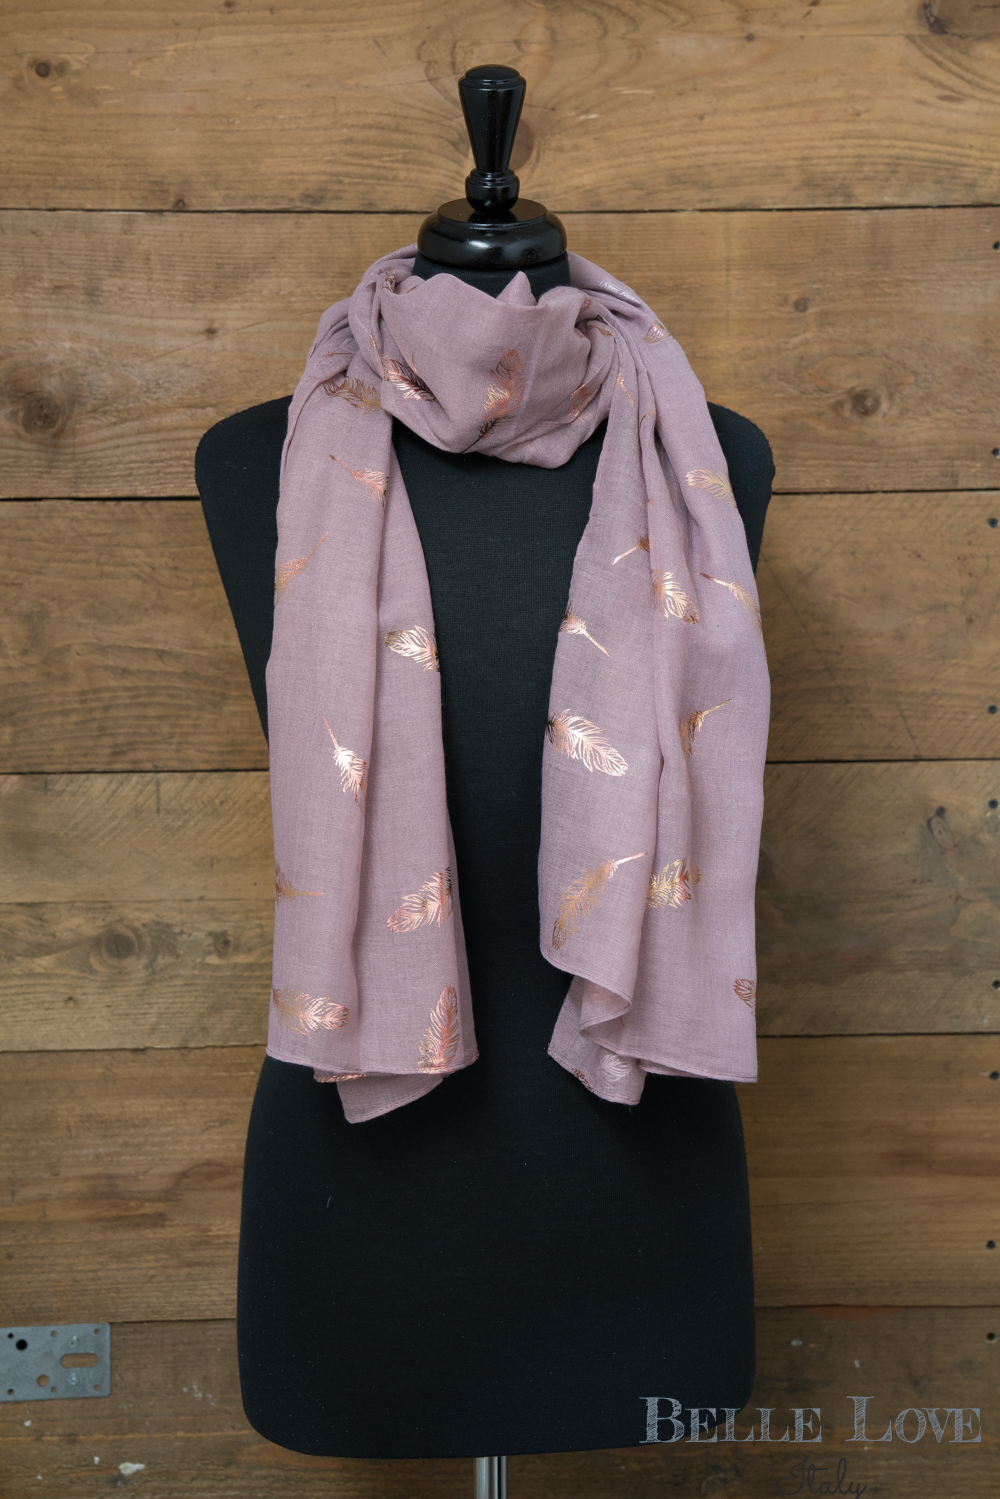 Belle Love Italy Rose Gold Feathers Scarf